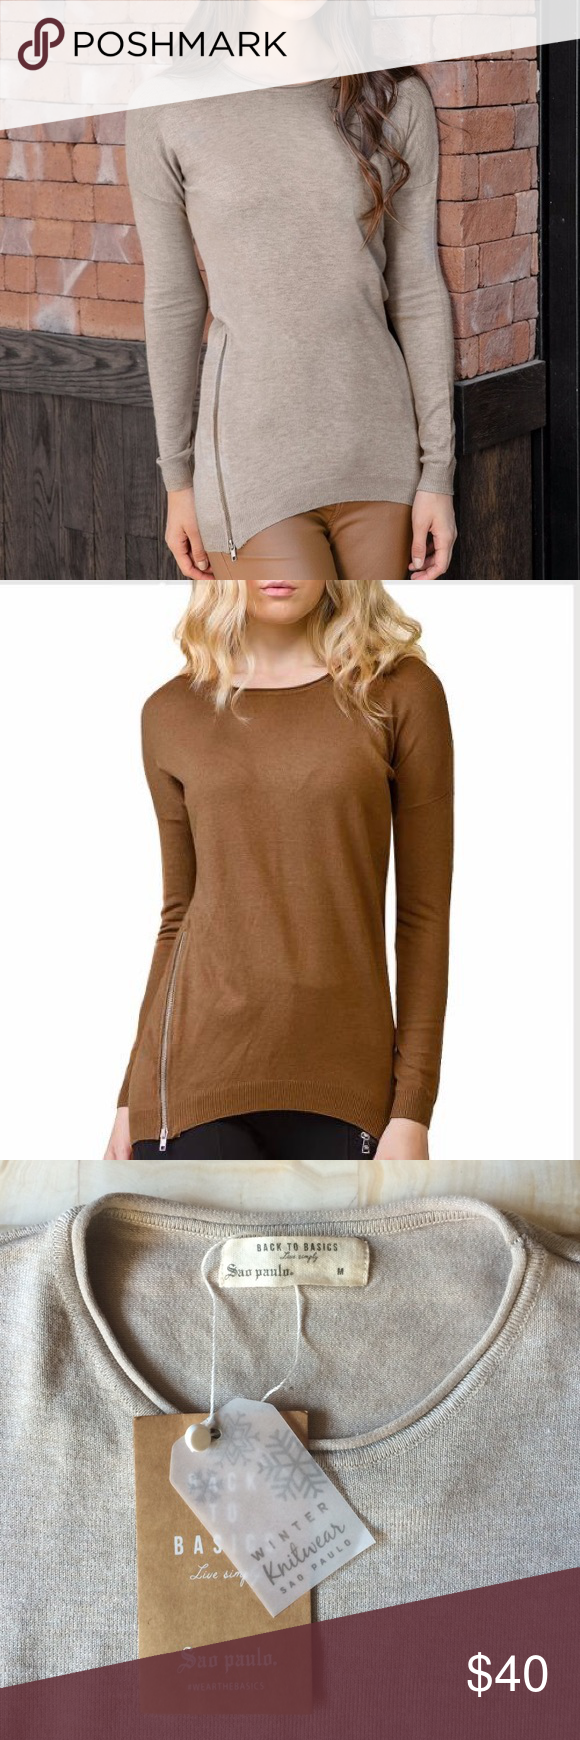 🎉Holiday Sale🎁🎈Knit Beige side zippers Sweater! 🎉Holiday Sale🎁🎈Knit Beige side zippers Sweater! Super soft, trendy and warm. Just in! Size M Sao Paolo Sweaters